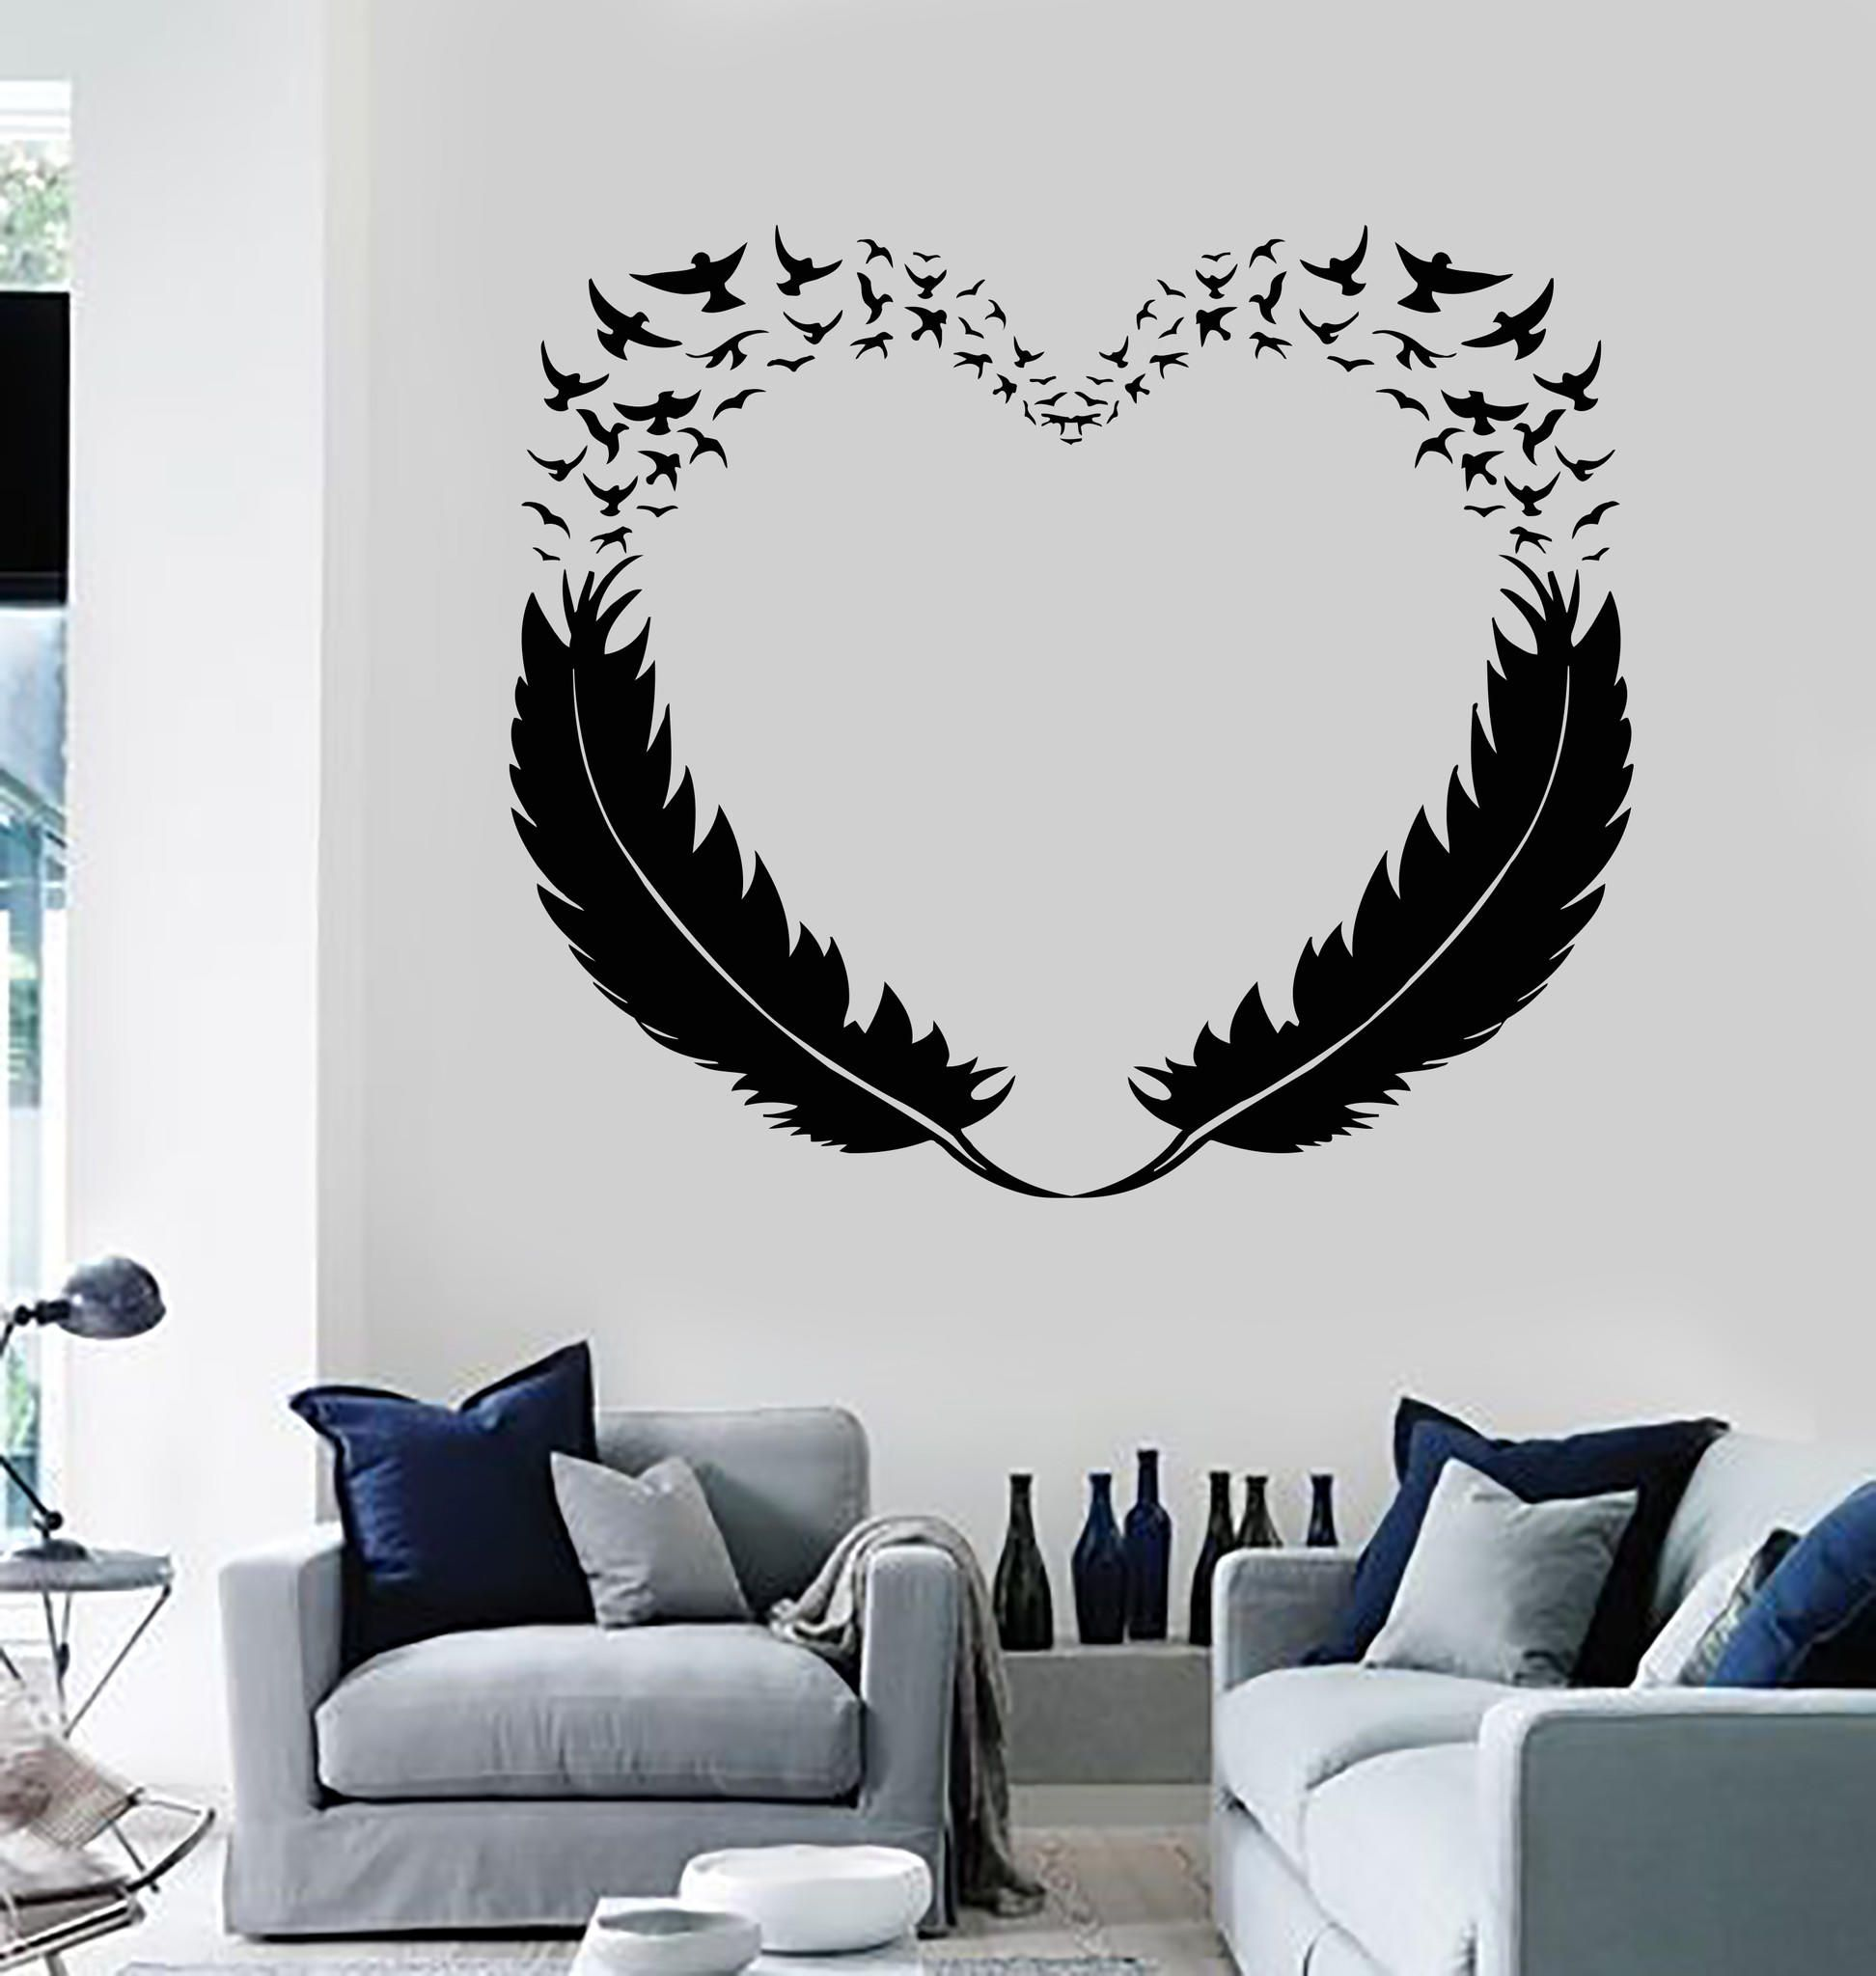 Vinyl Wall Decal Feathers Heart Decor Love Birds Romantic Stickers